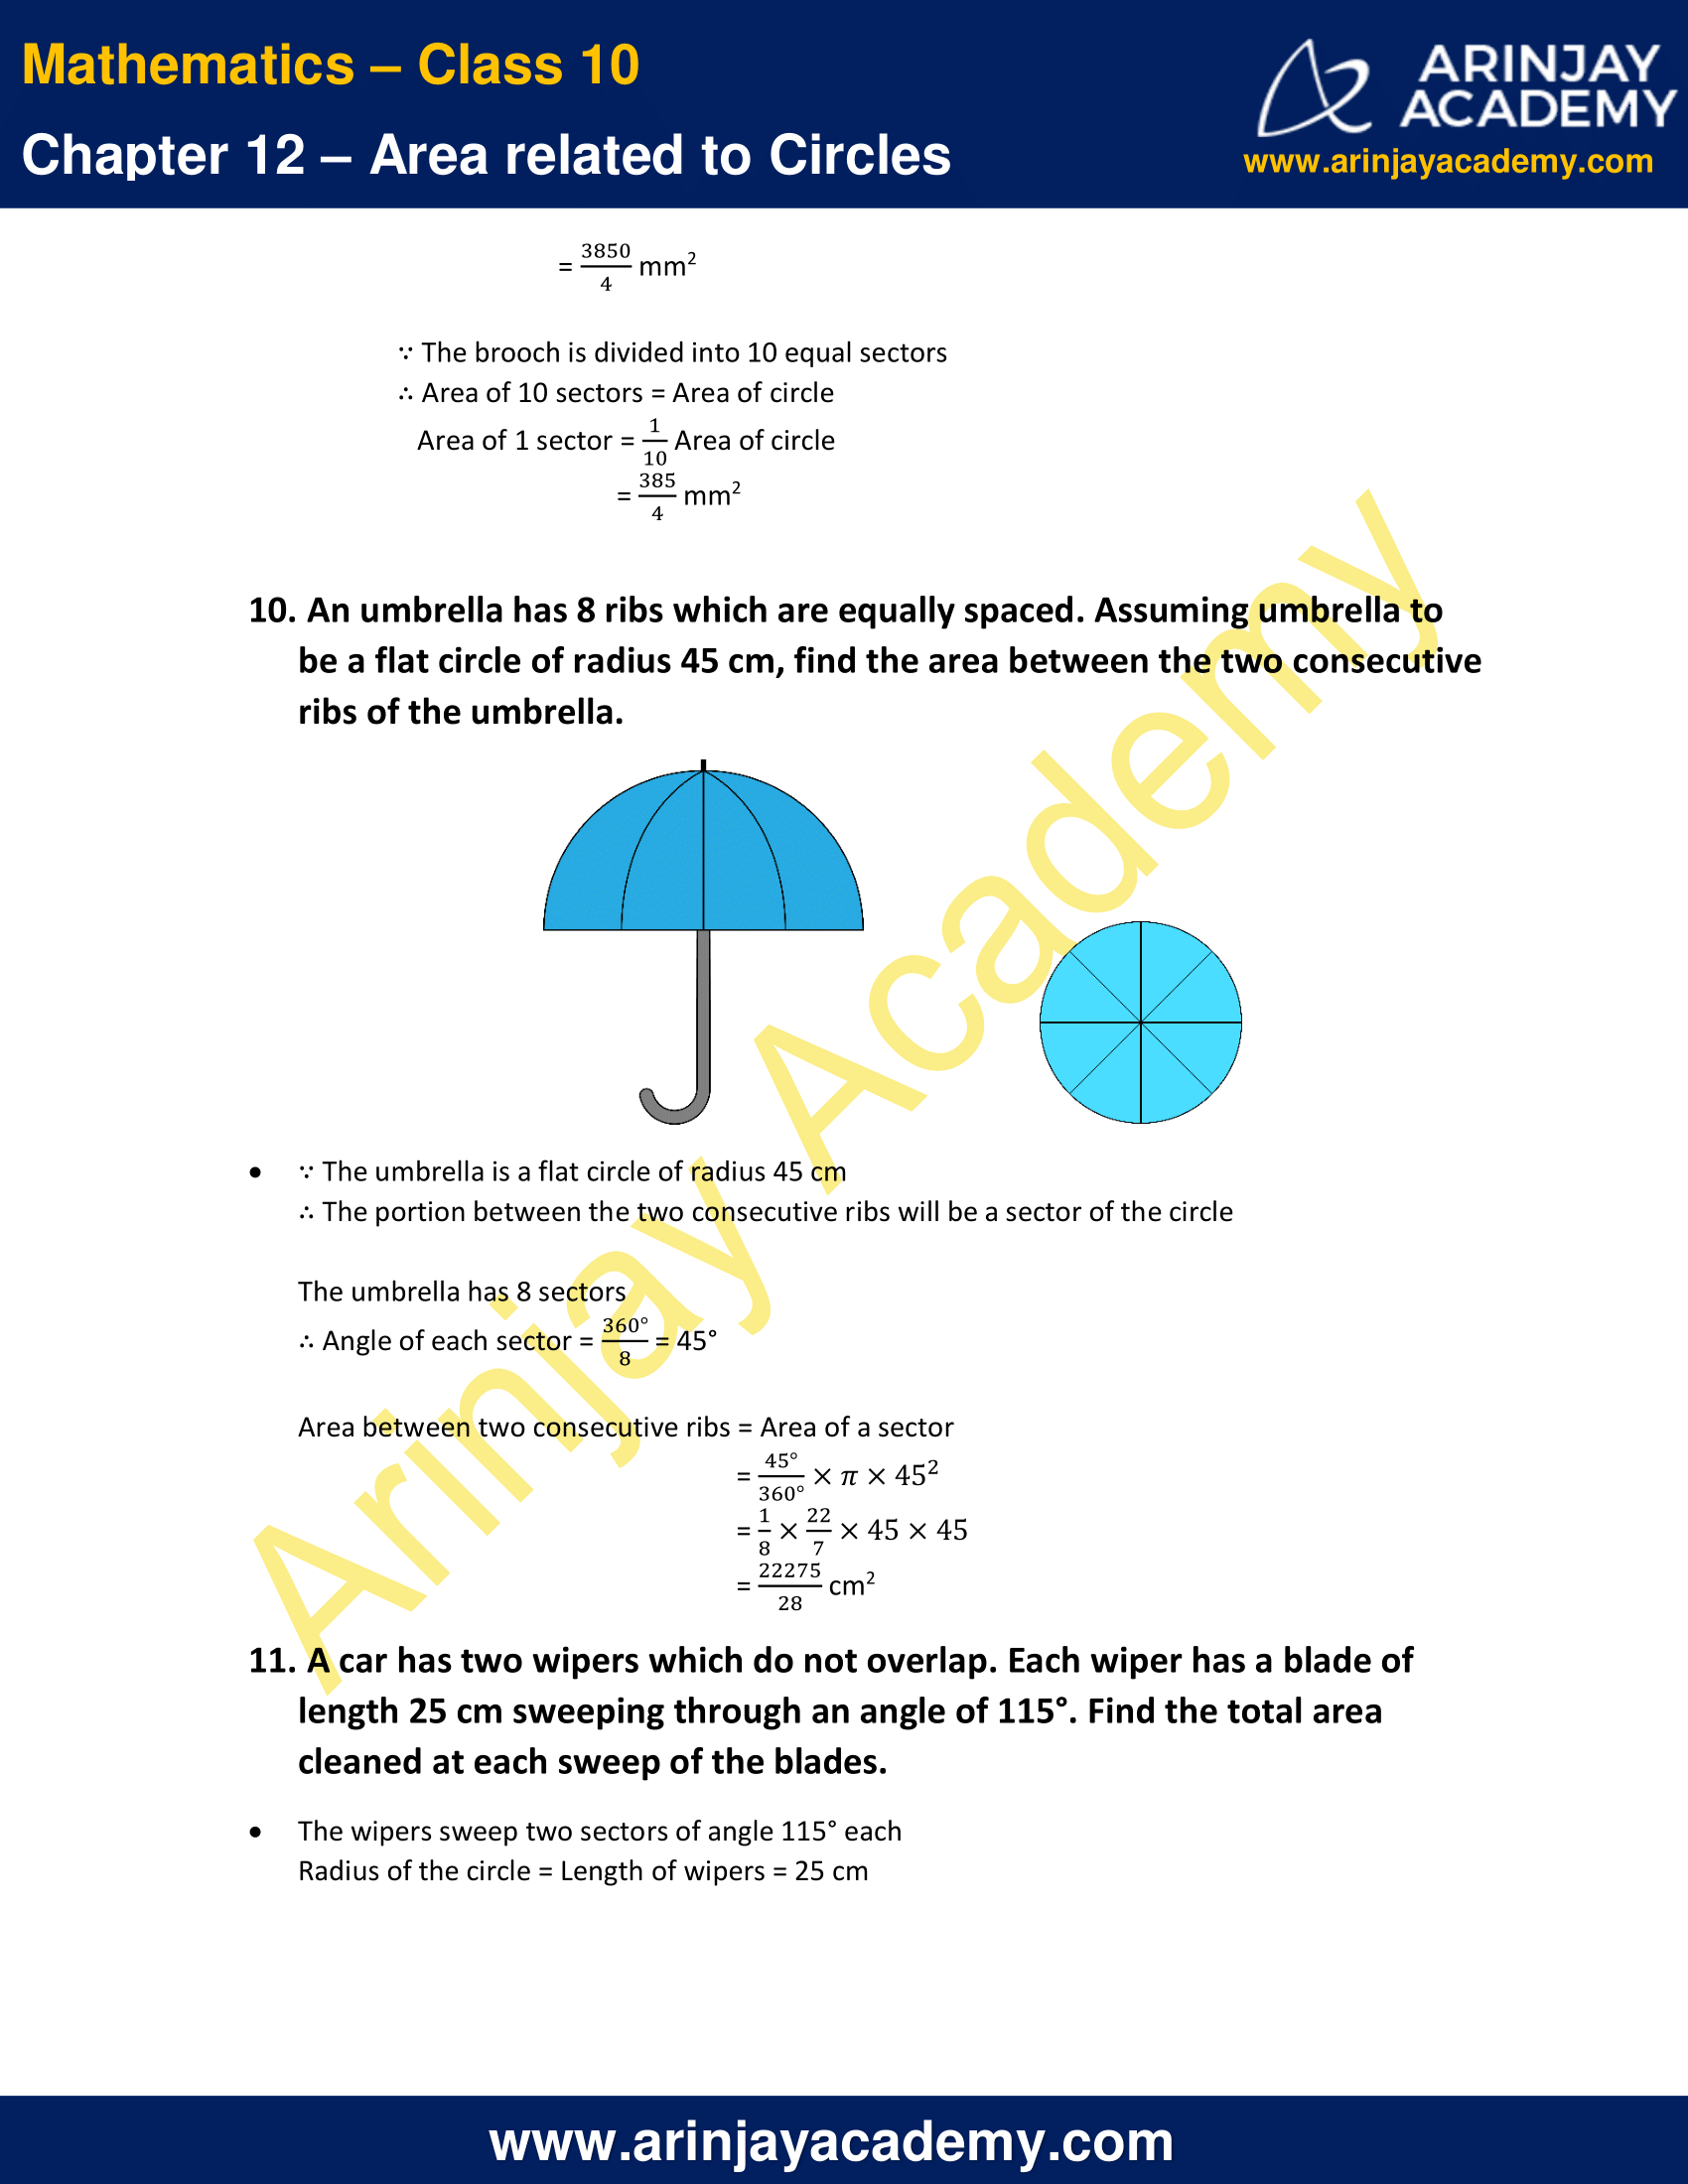 NCERT Solutions For Class 10 Maths Chapter 12 Exercise 12.2 image 7